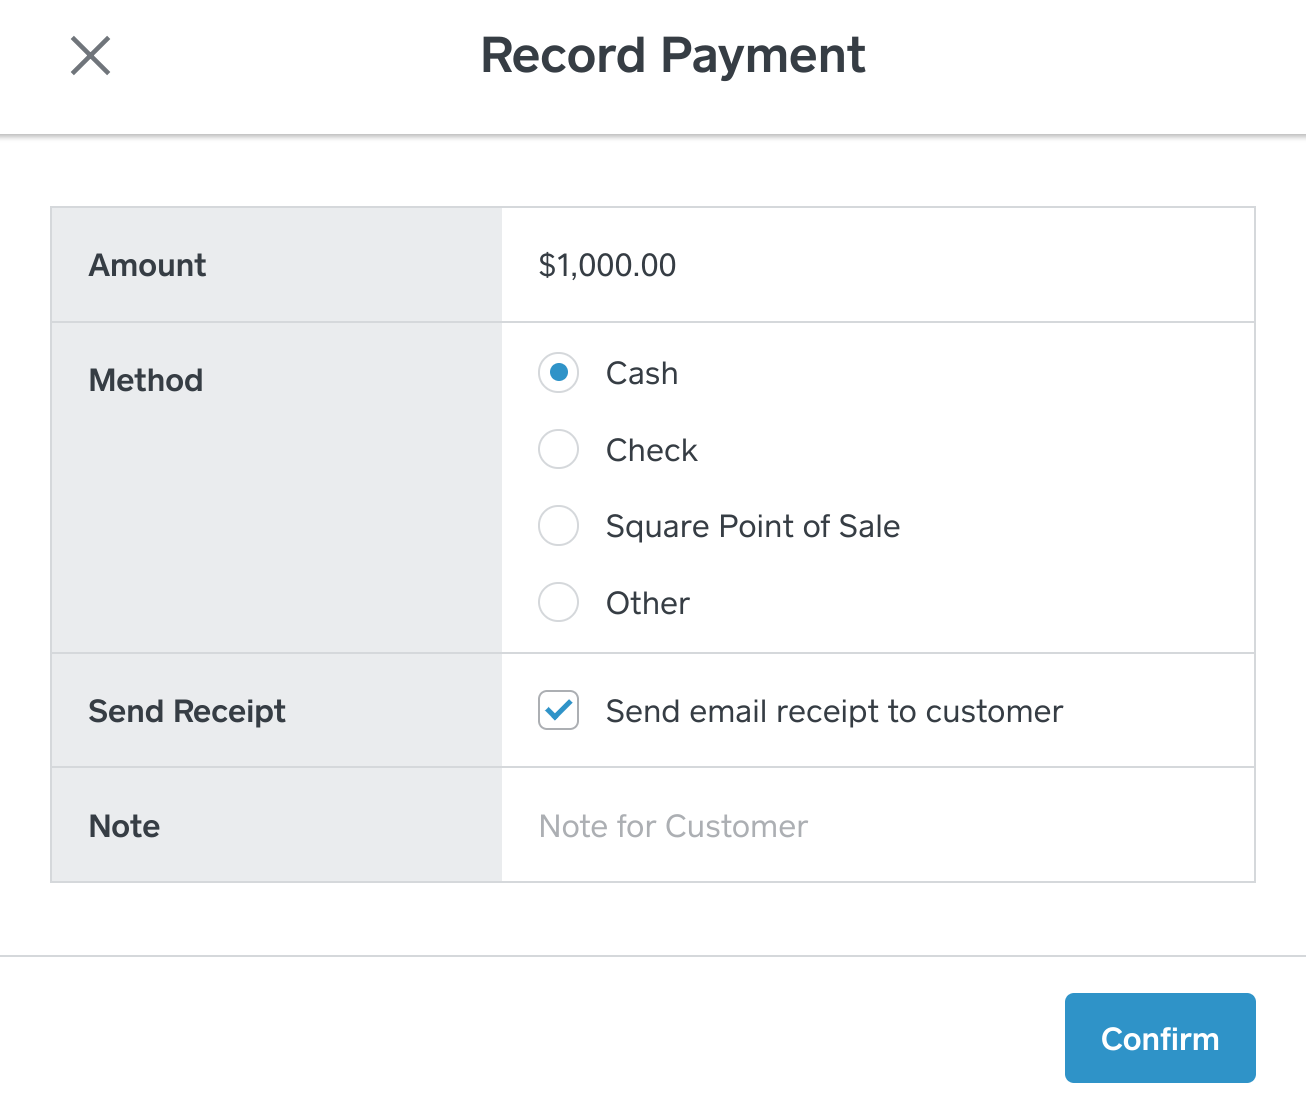 Record Payment